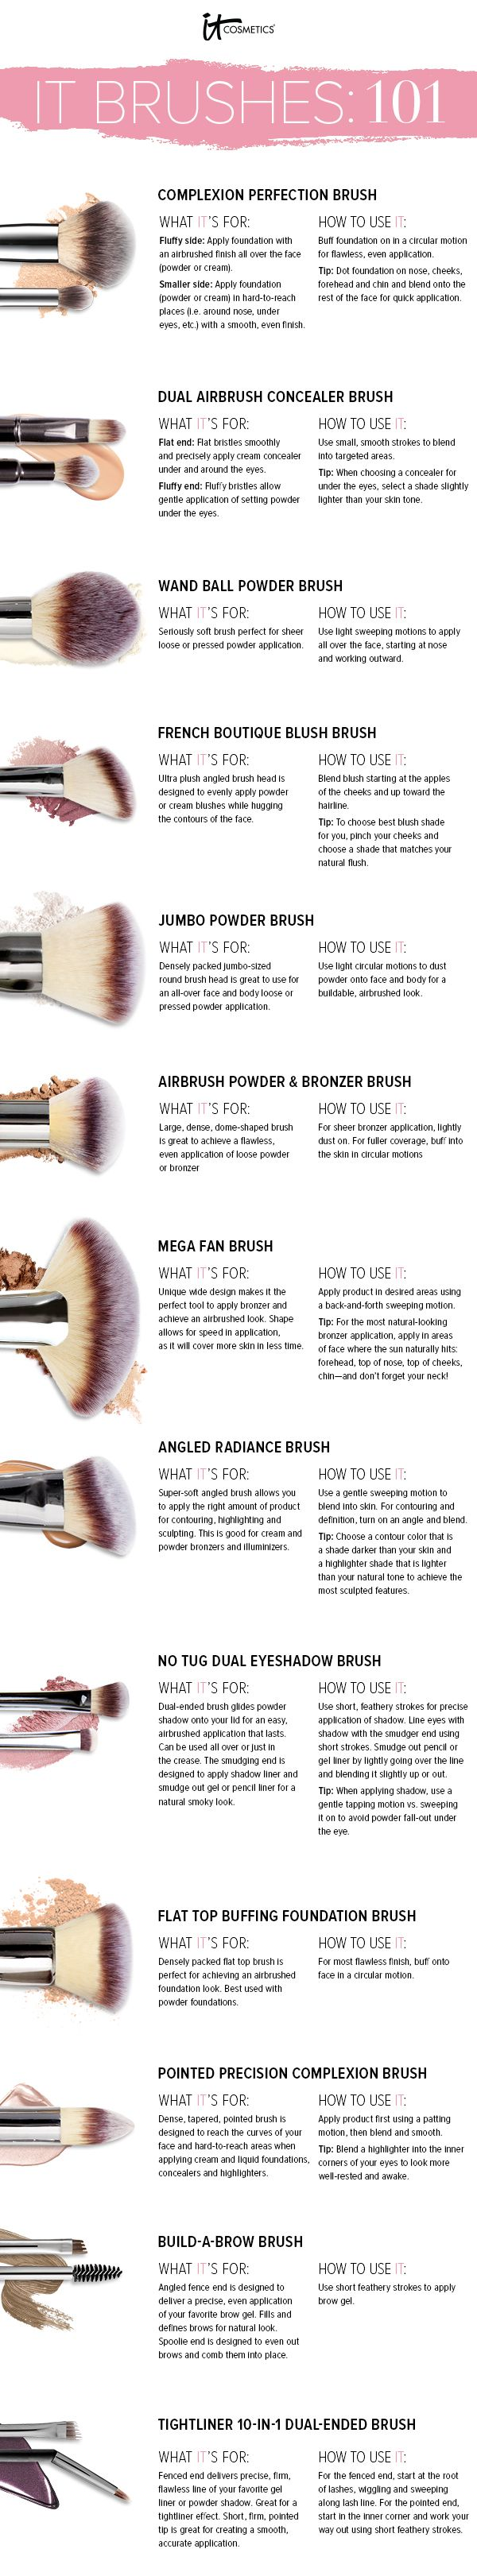 Heavenly Luxe Flat Top Buffing Foundation Brush #6 by IT Cosmetics #4